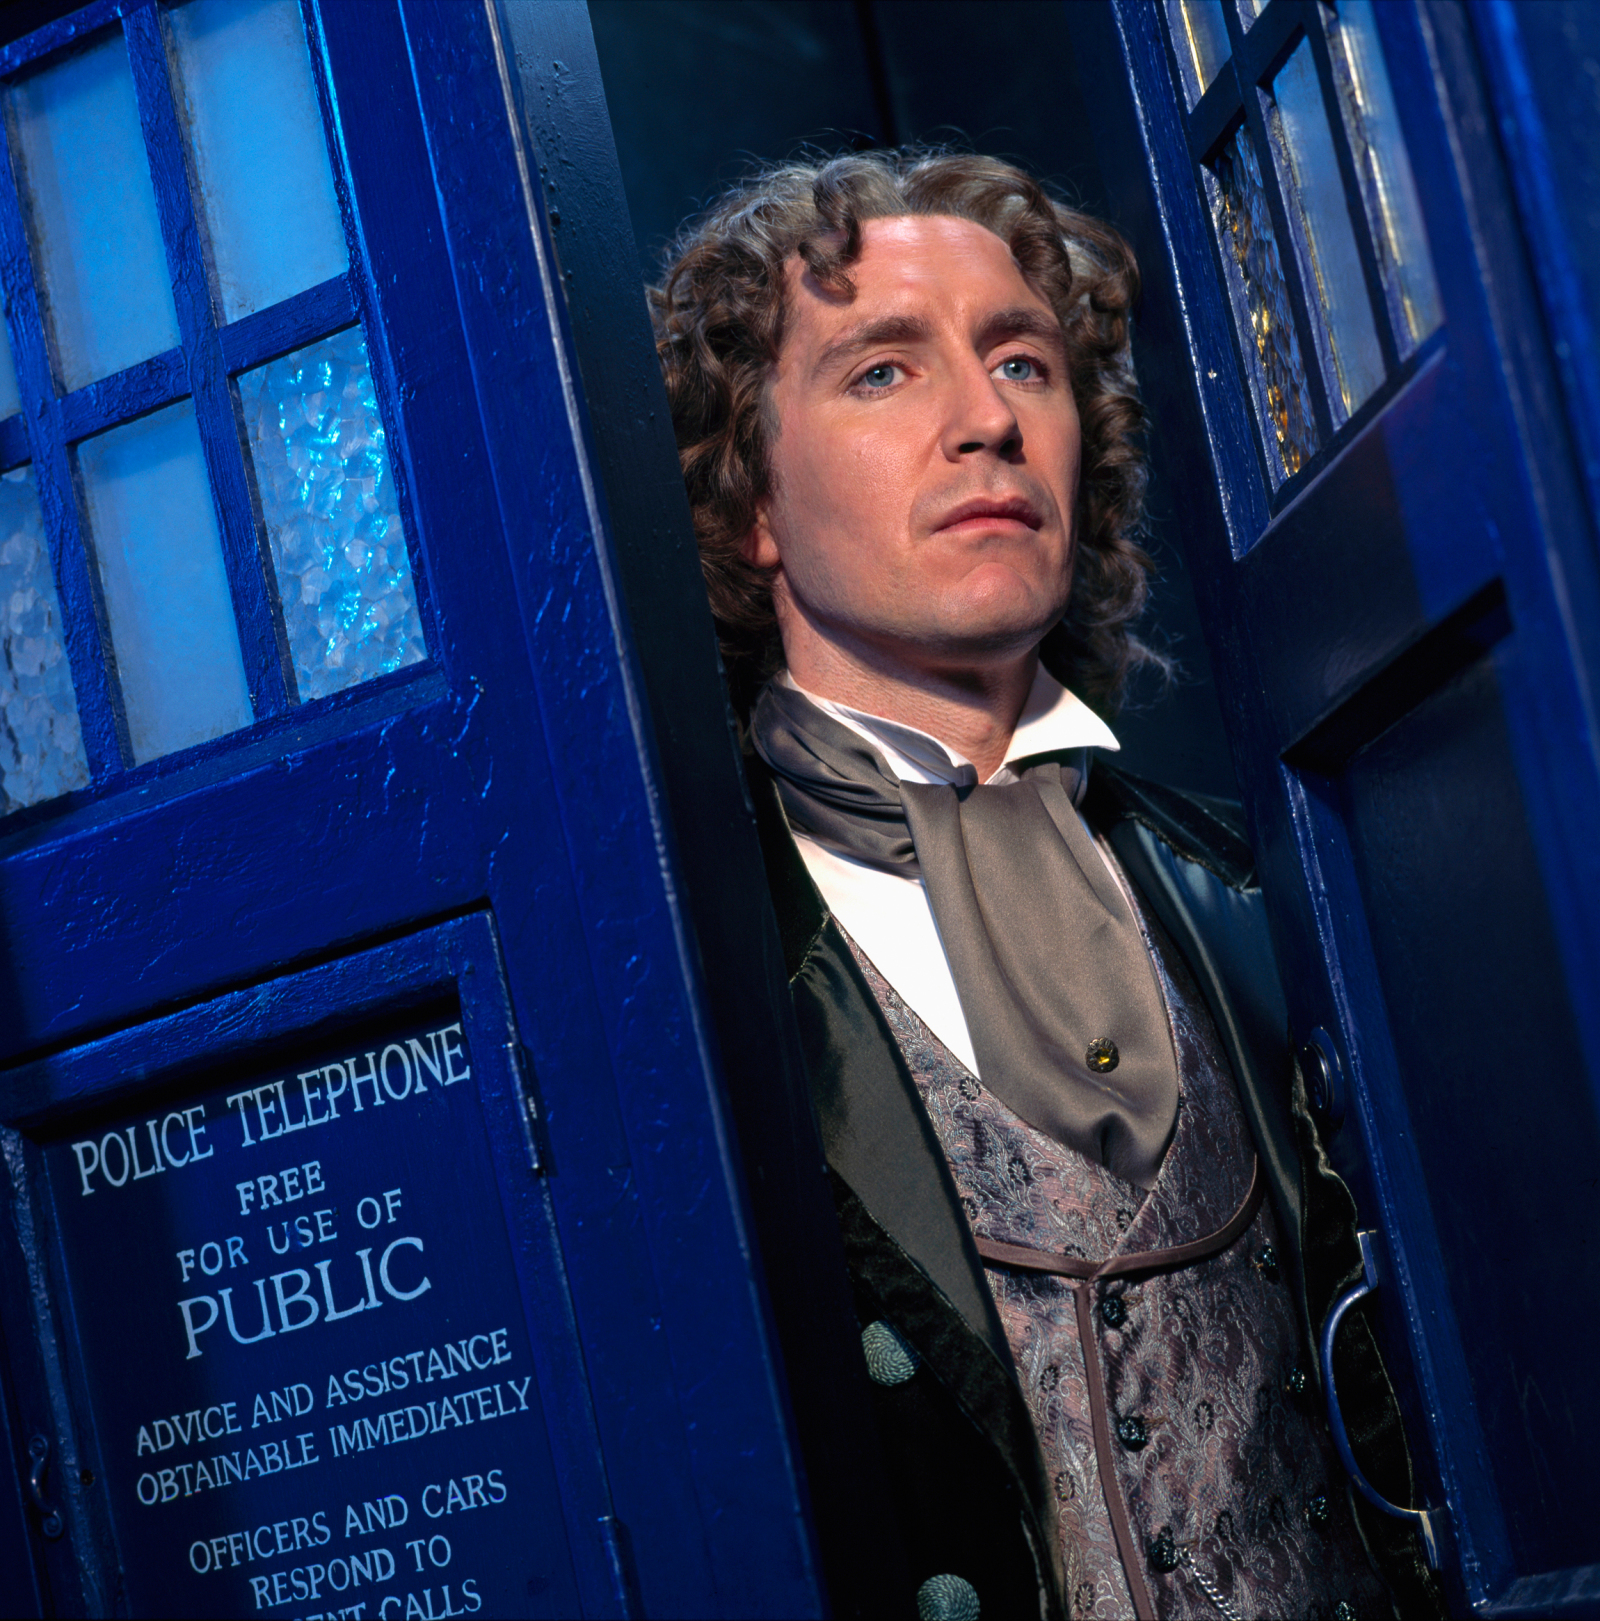 Doctor Who: Eight's end – Comparing two showrunners' takes on a Doctor's final moments